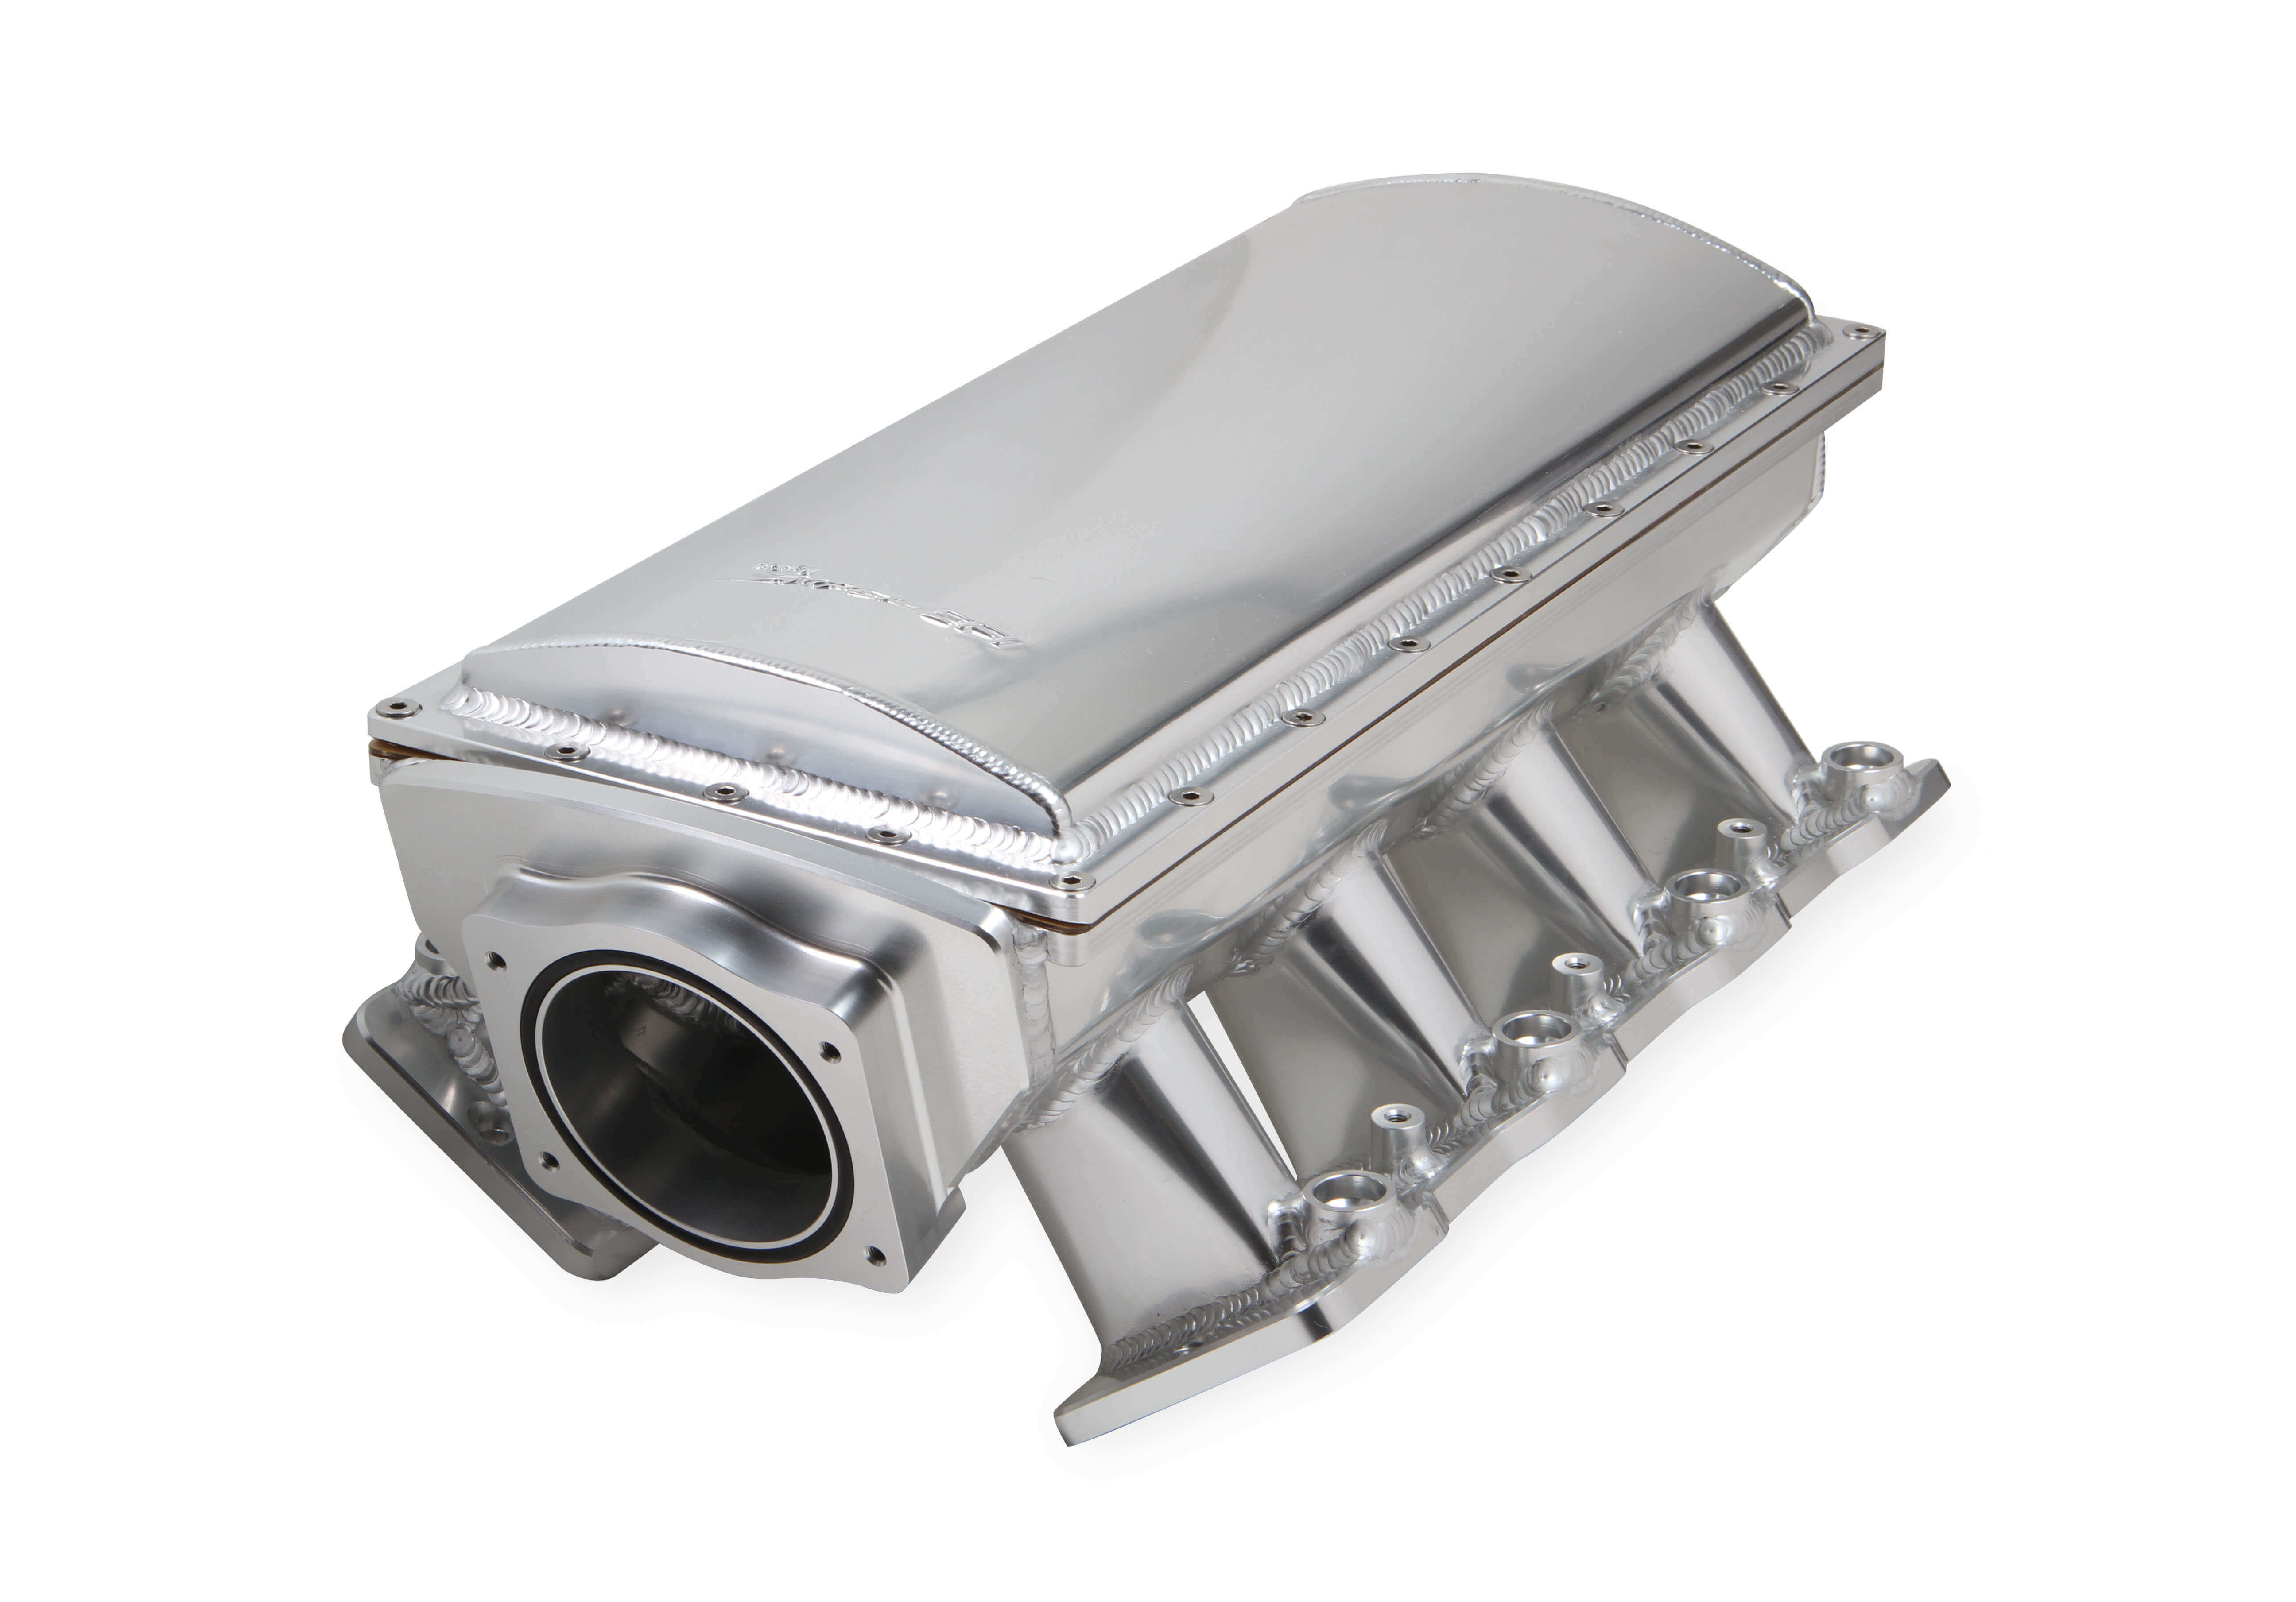 LS3/L92 Holley Sniper EFI Fabricated Race Series Intake Manifold - 90mm Silver